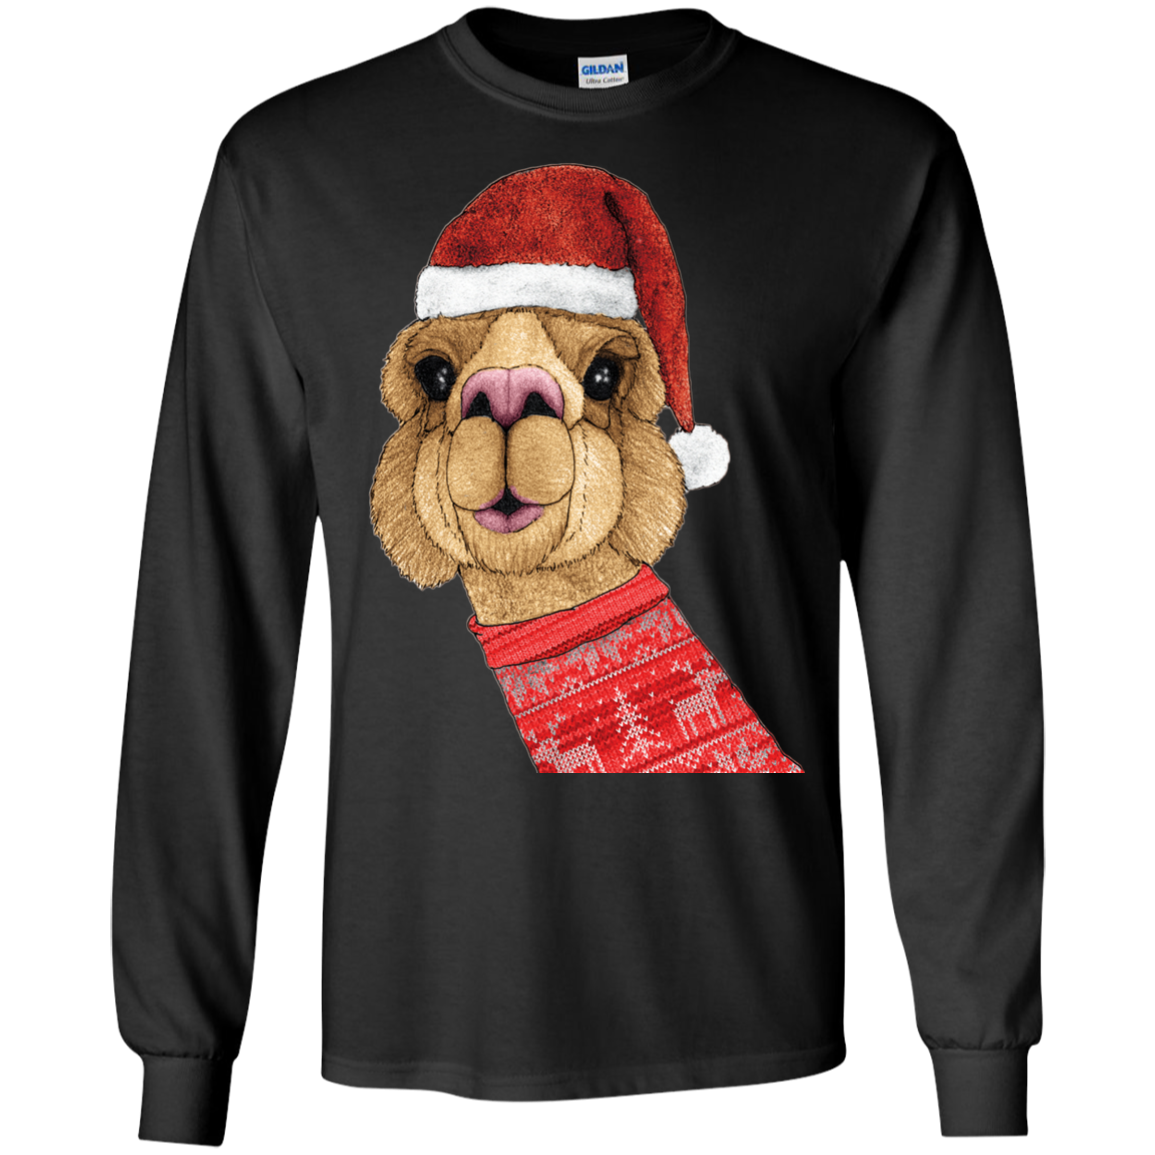 Alpaca Christmas Holiday Sweater T-Shirts Funny Ugly Christmas Sweater Shirt - The Sun Cat